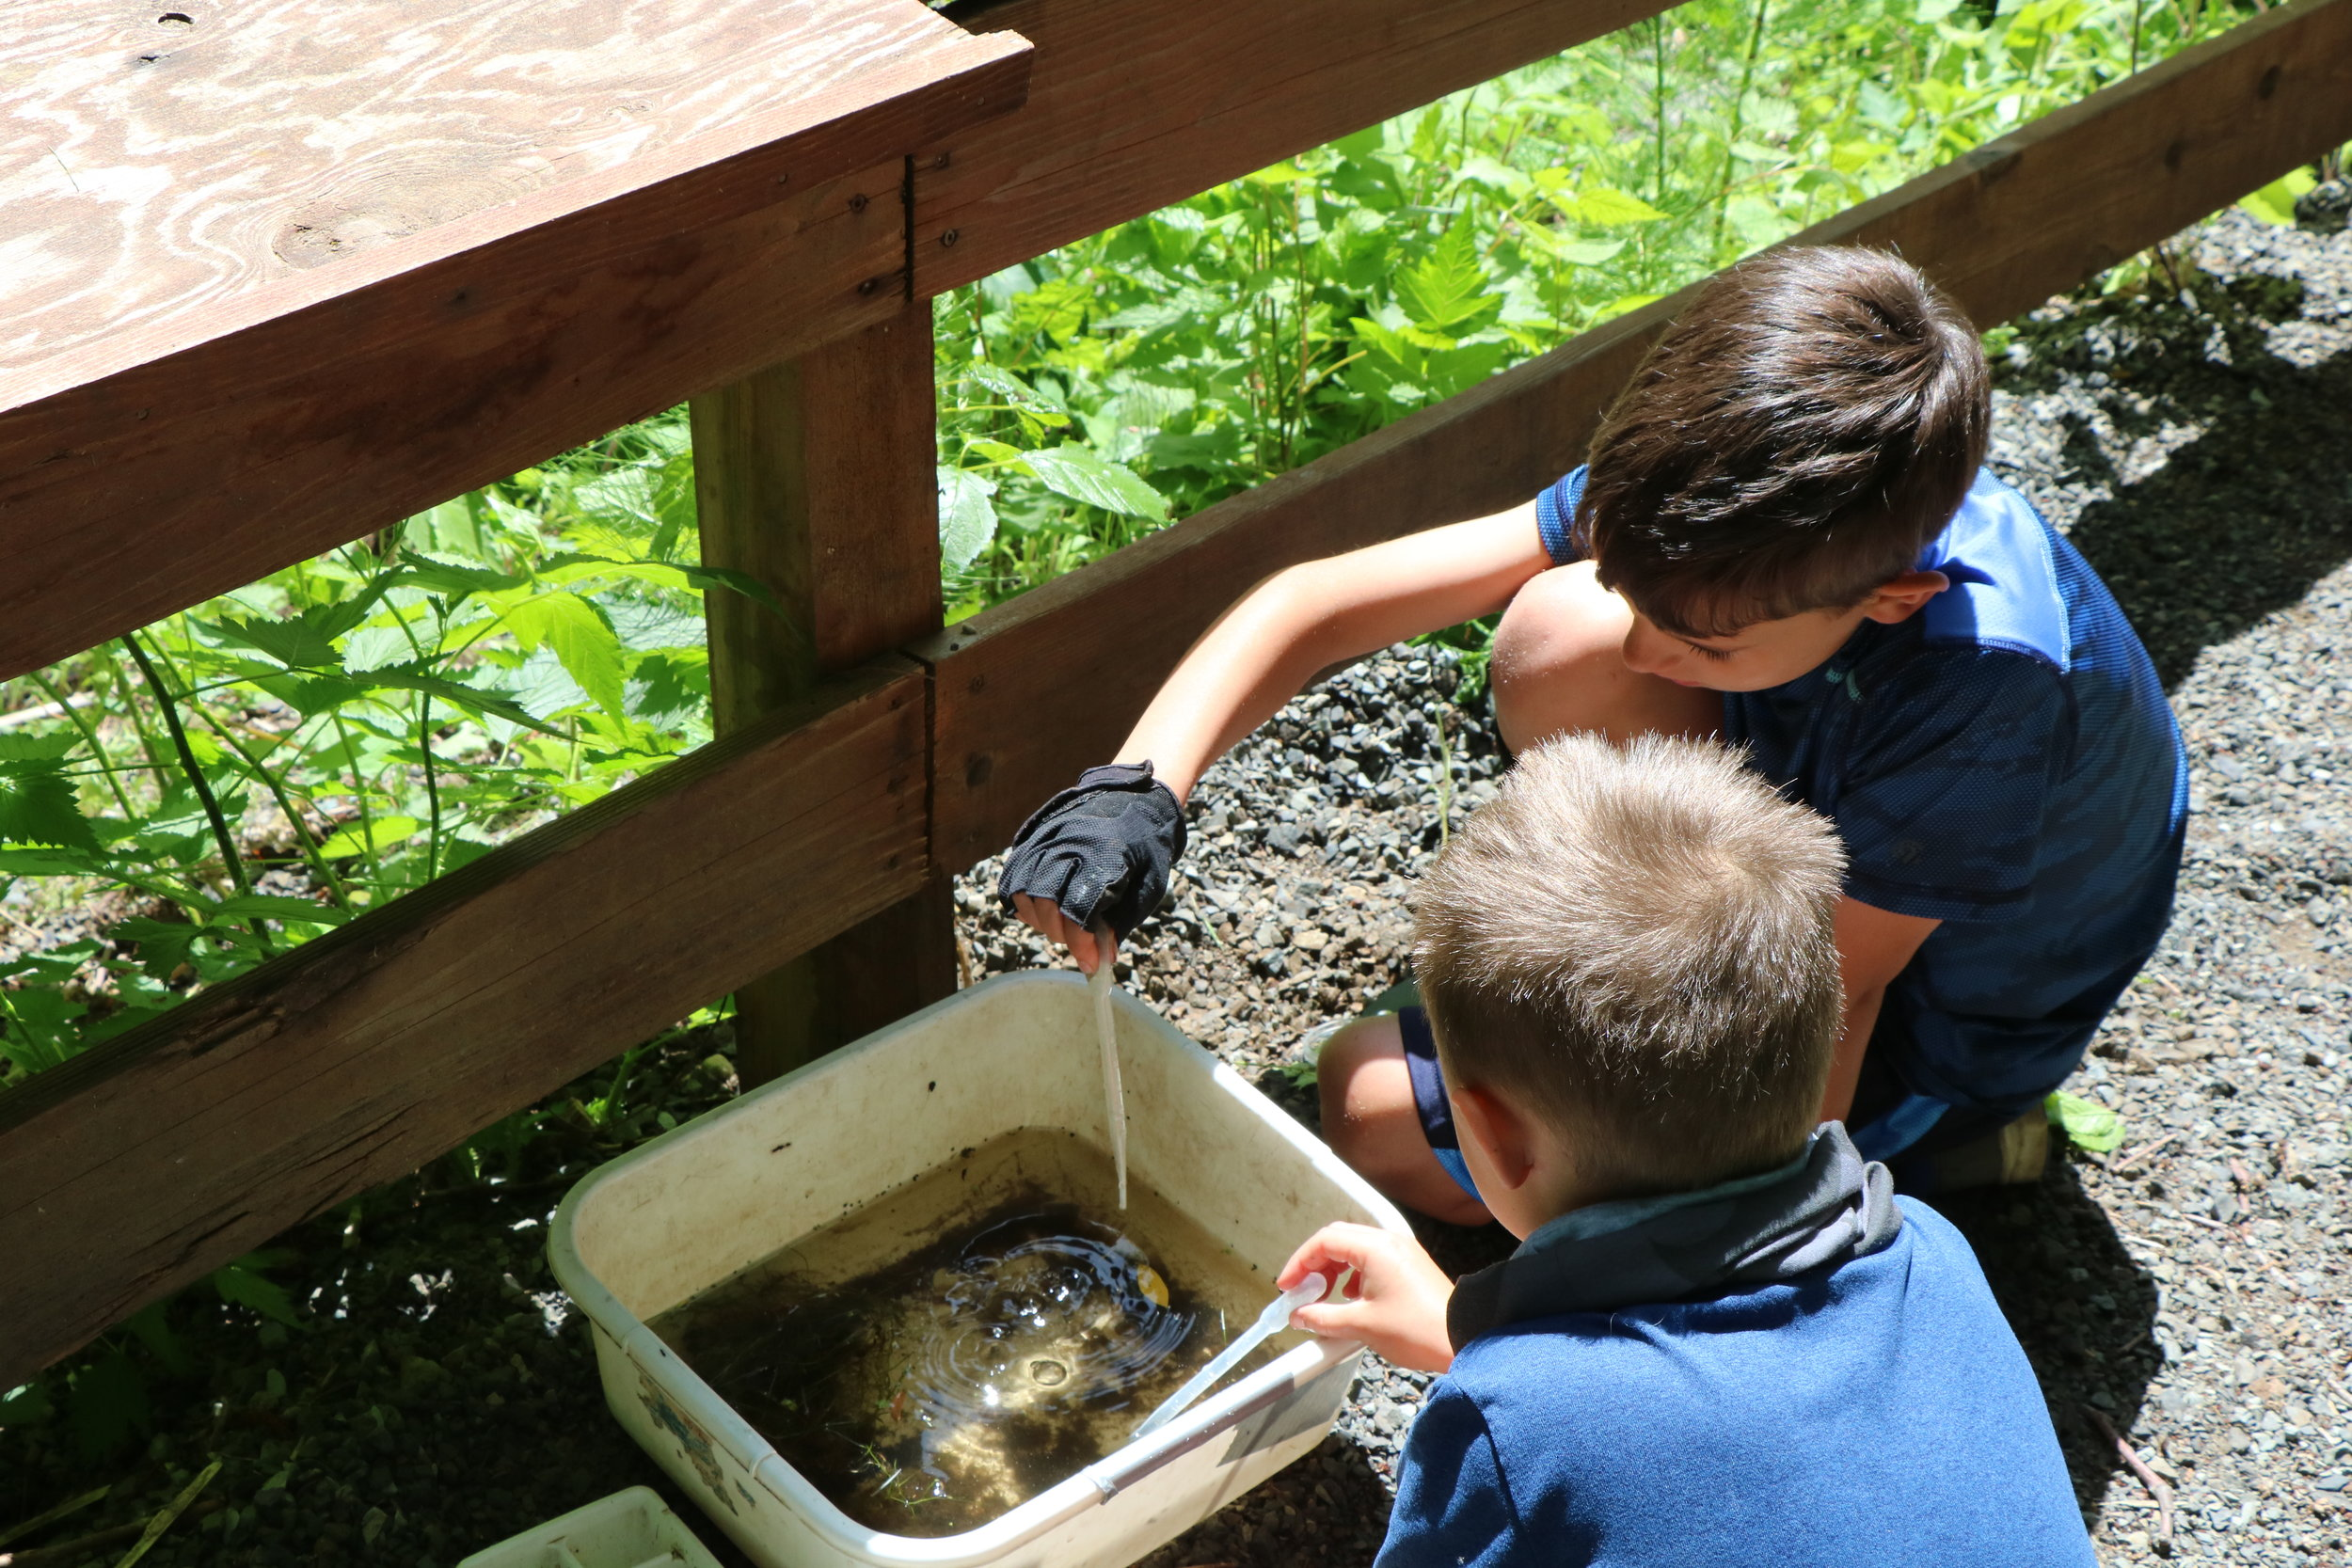 Conducting a Pond Study